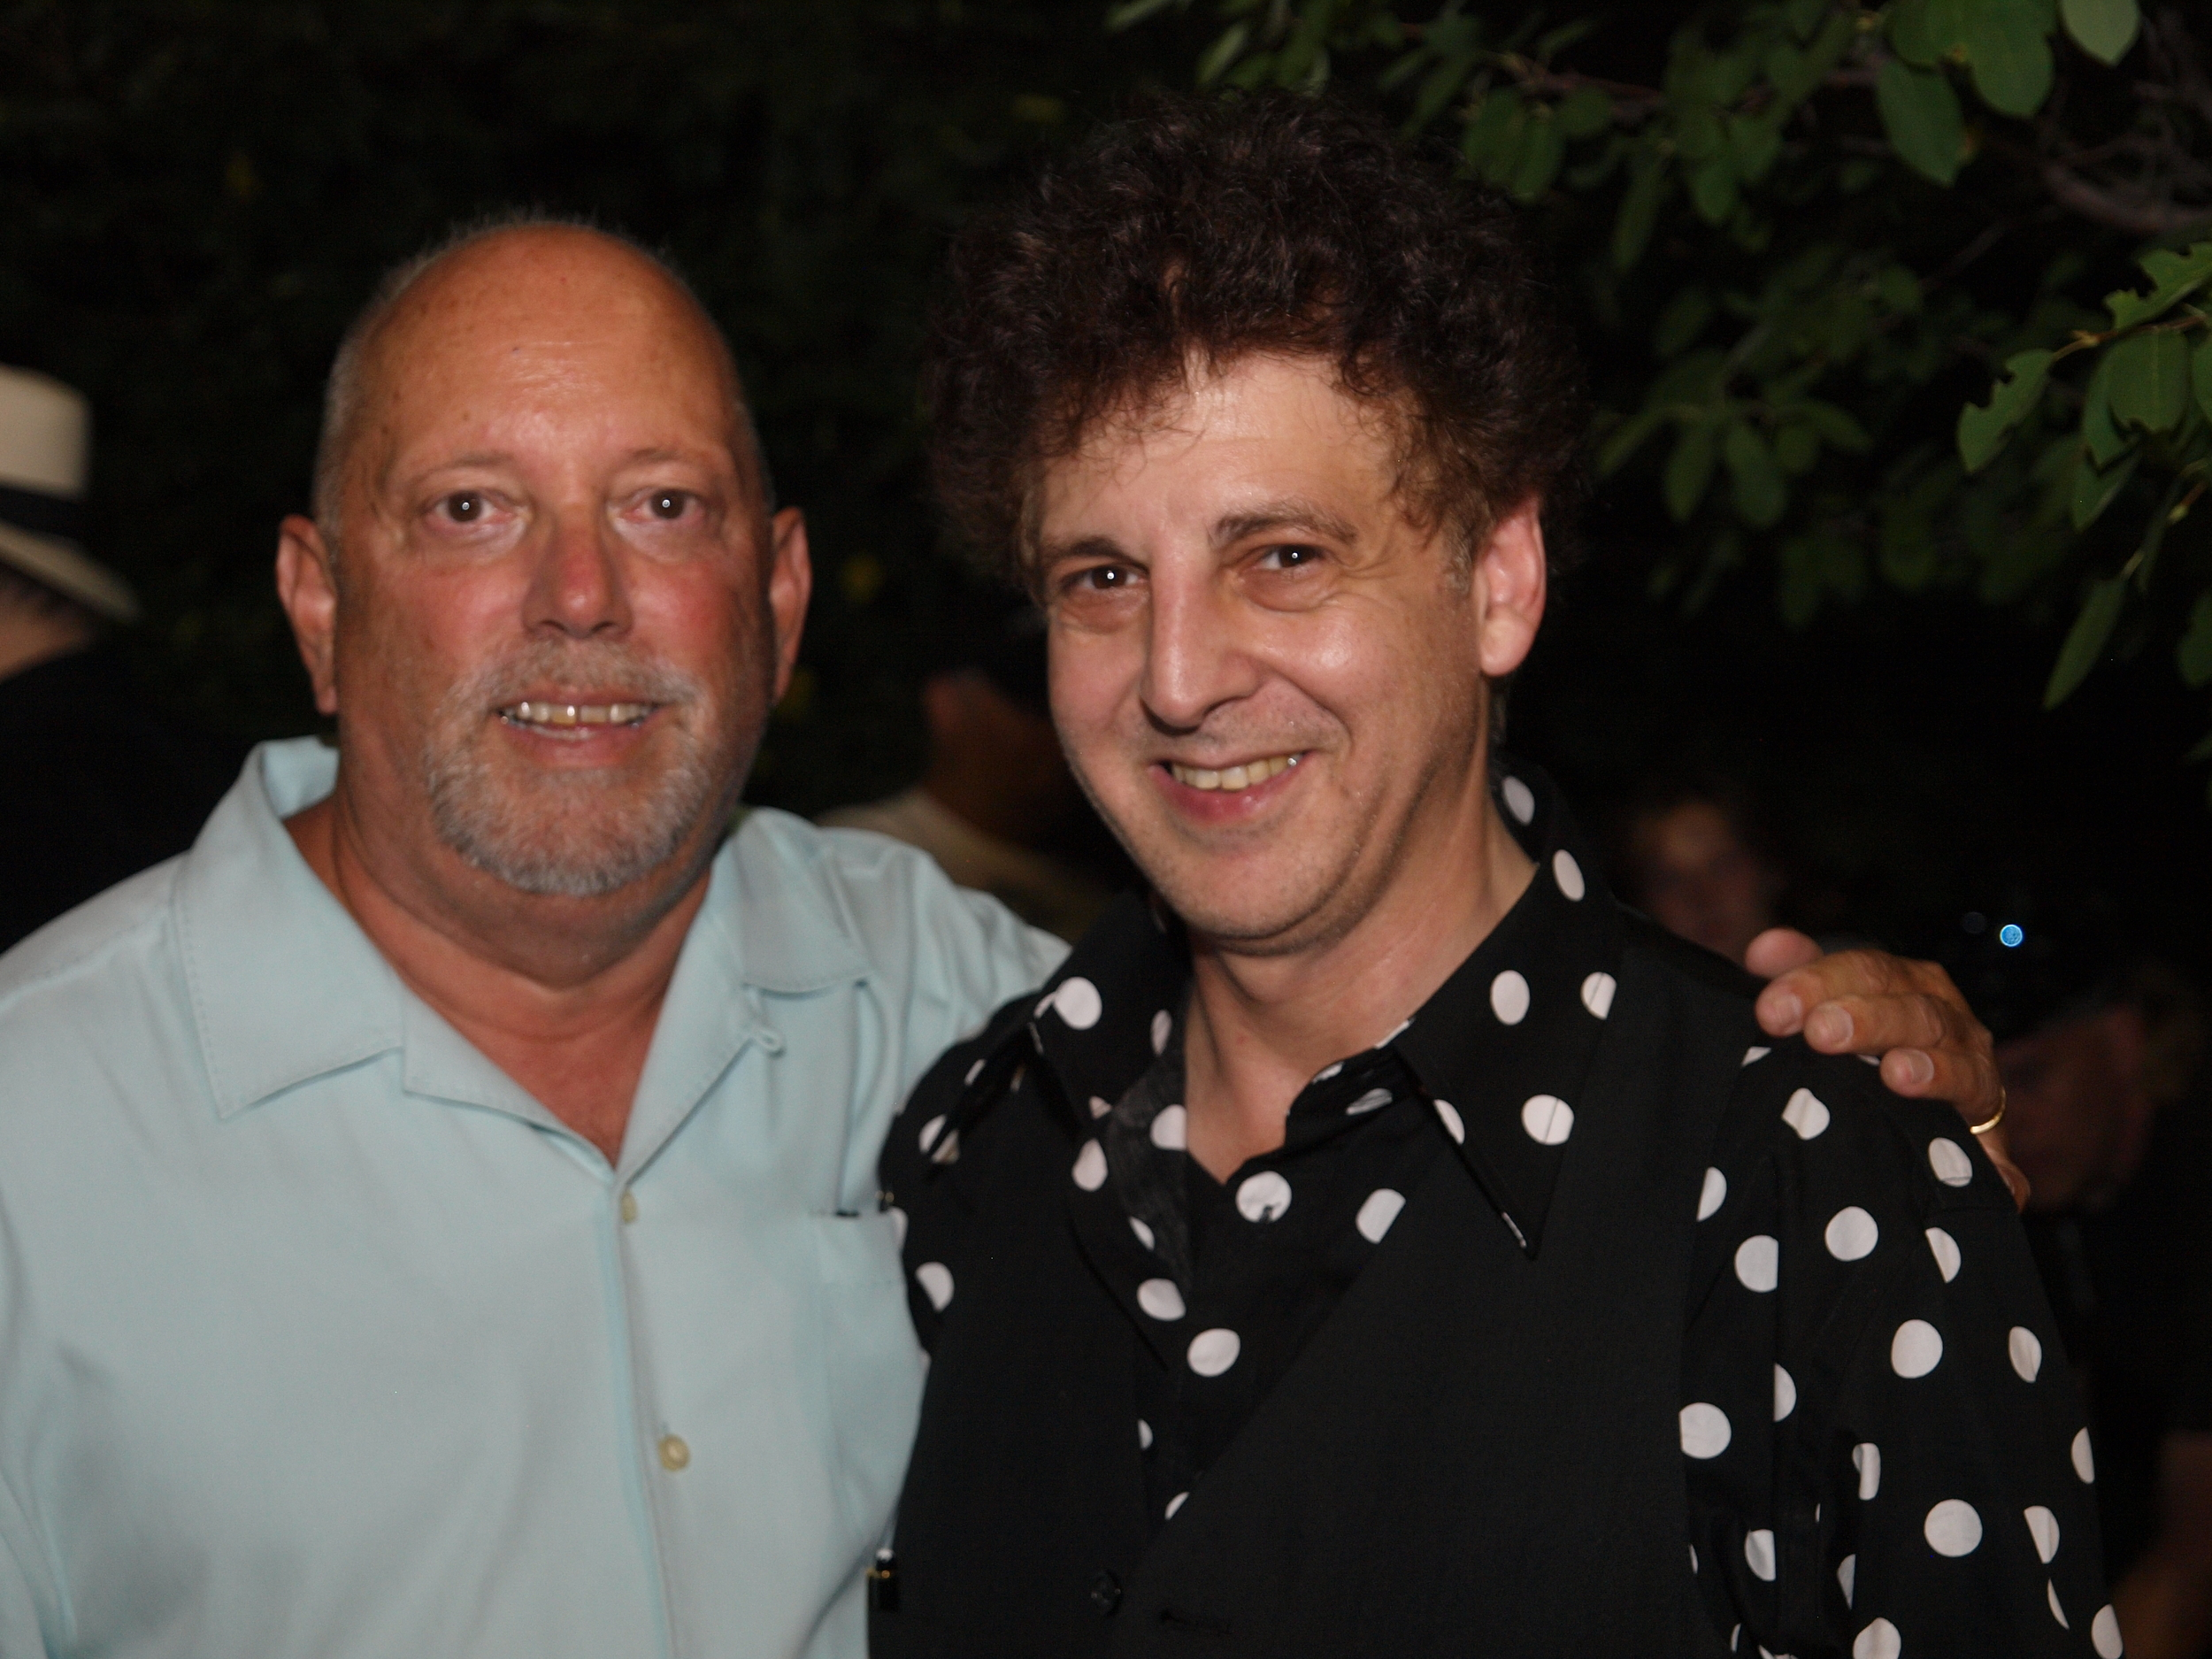 Kenny Krona and Magic Marc / Salute to the Music of Bob Dylan / The Veterans' Memorial Wolfe Park Amphitheater / St. Louis Park, Minnesota / August 9th, 2014 / Photo by Neil Schloner